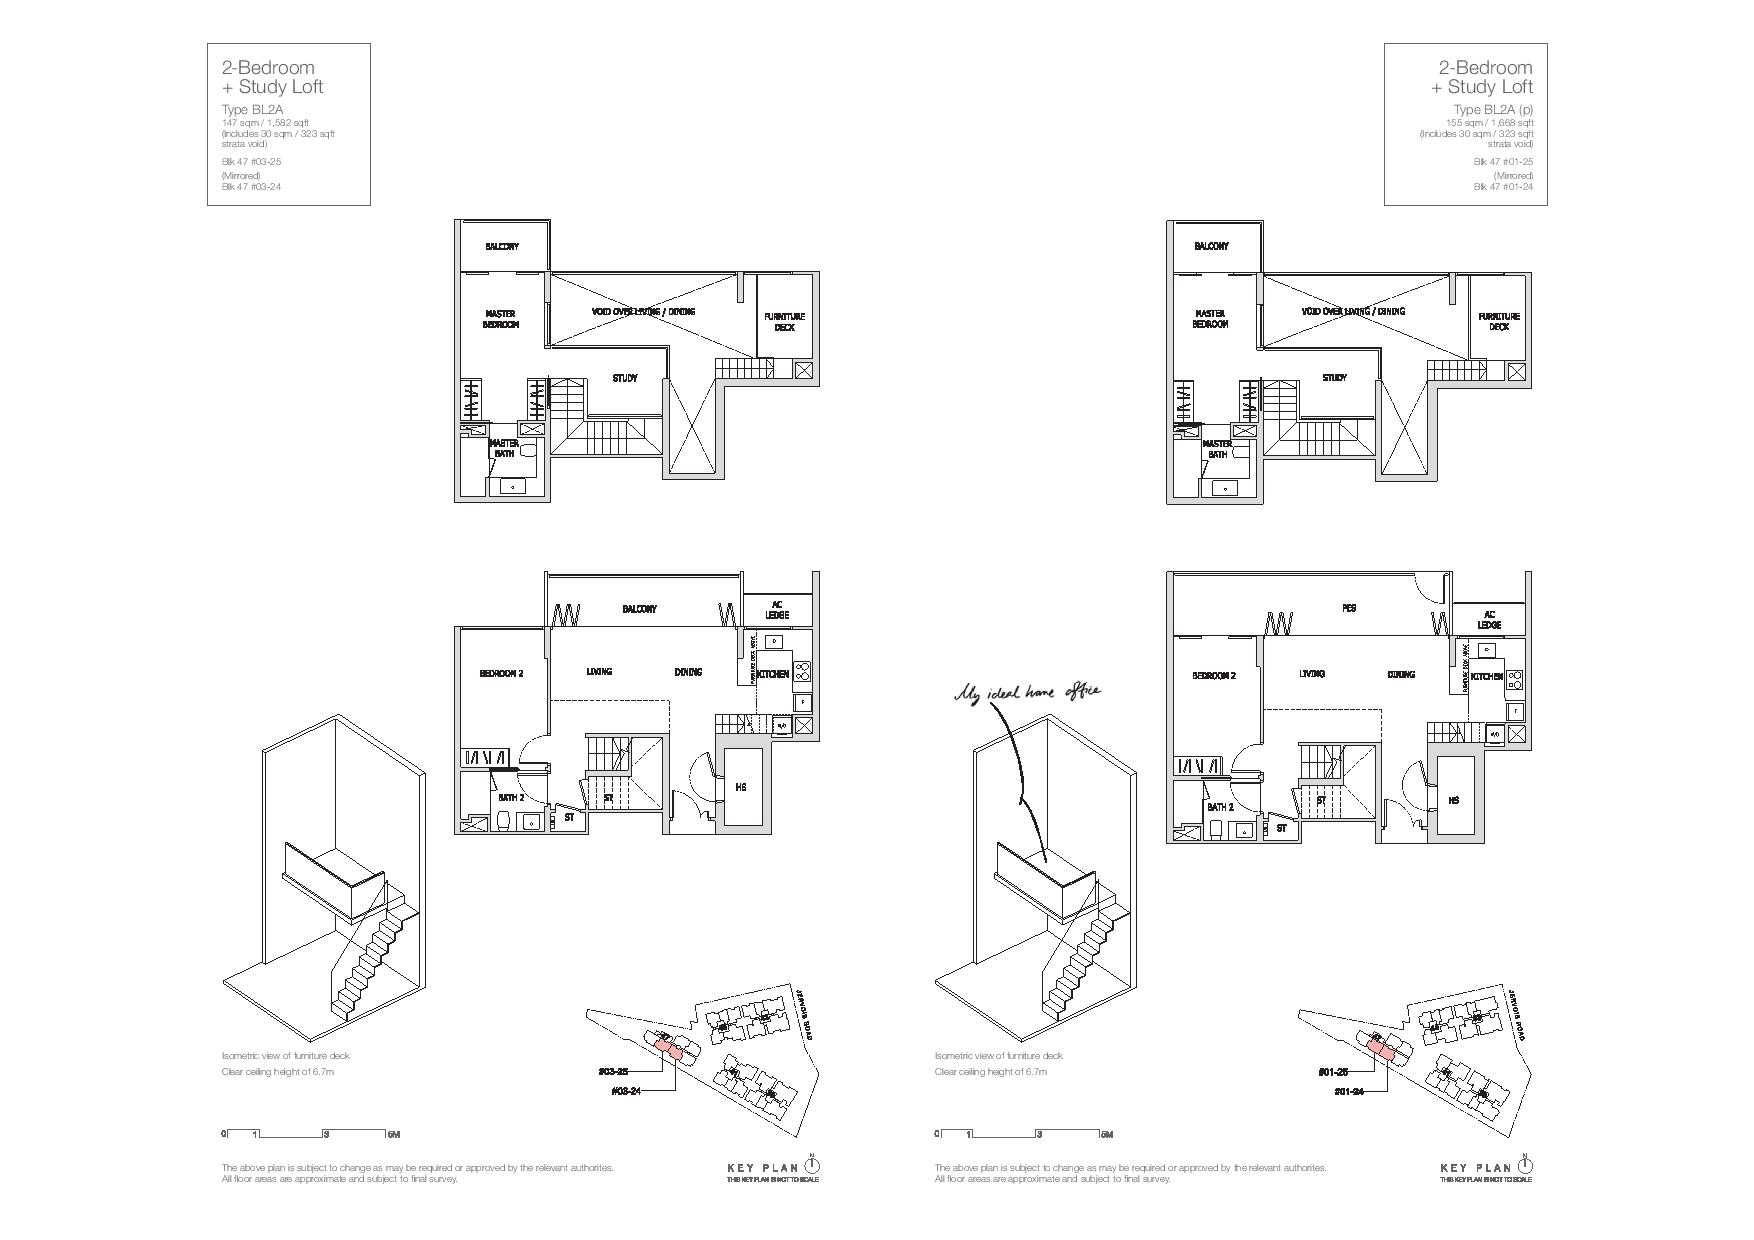 Mon Jervois 2 Bedroom + Study Loft Floor Plans Type BL2A, BL2A(p)